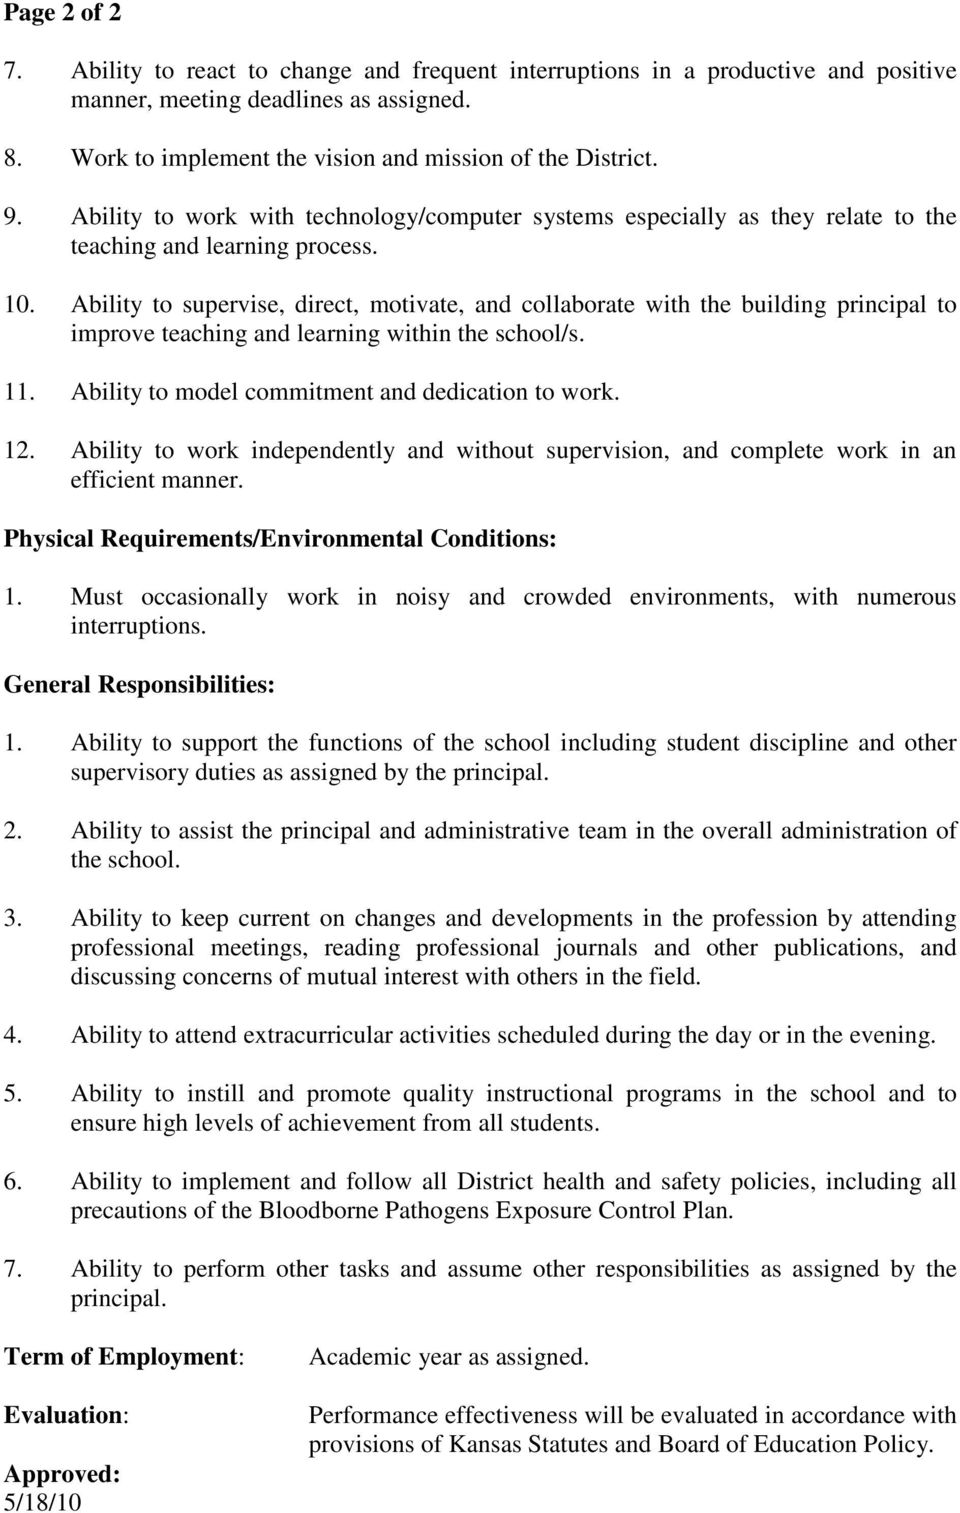 Ability to supervise, direct, motivate, and collaborate with the building principal to improve teaching and learning within the school/s. 11. Ability to model commitment and dedication to work. 12.